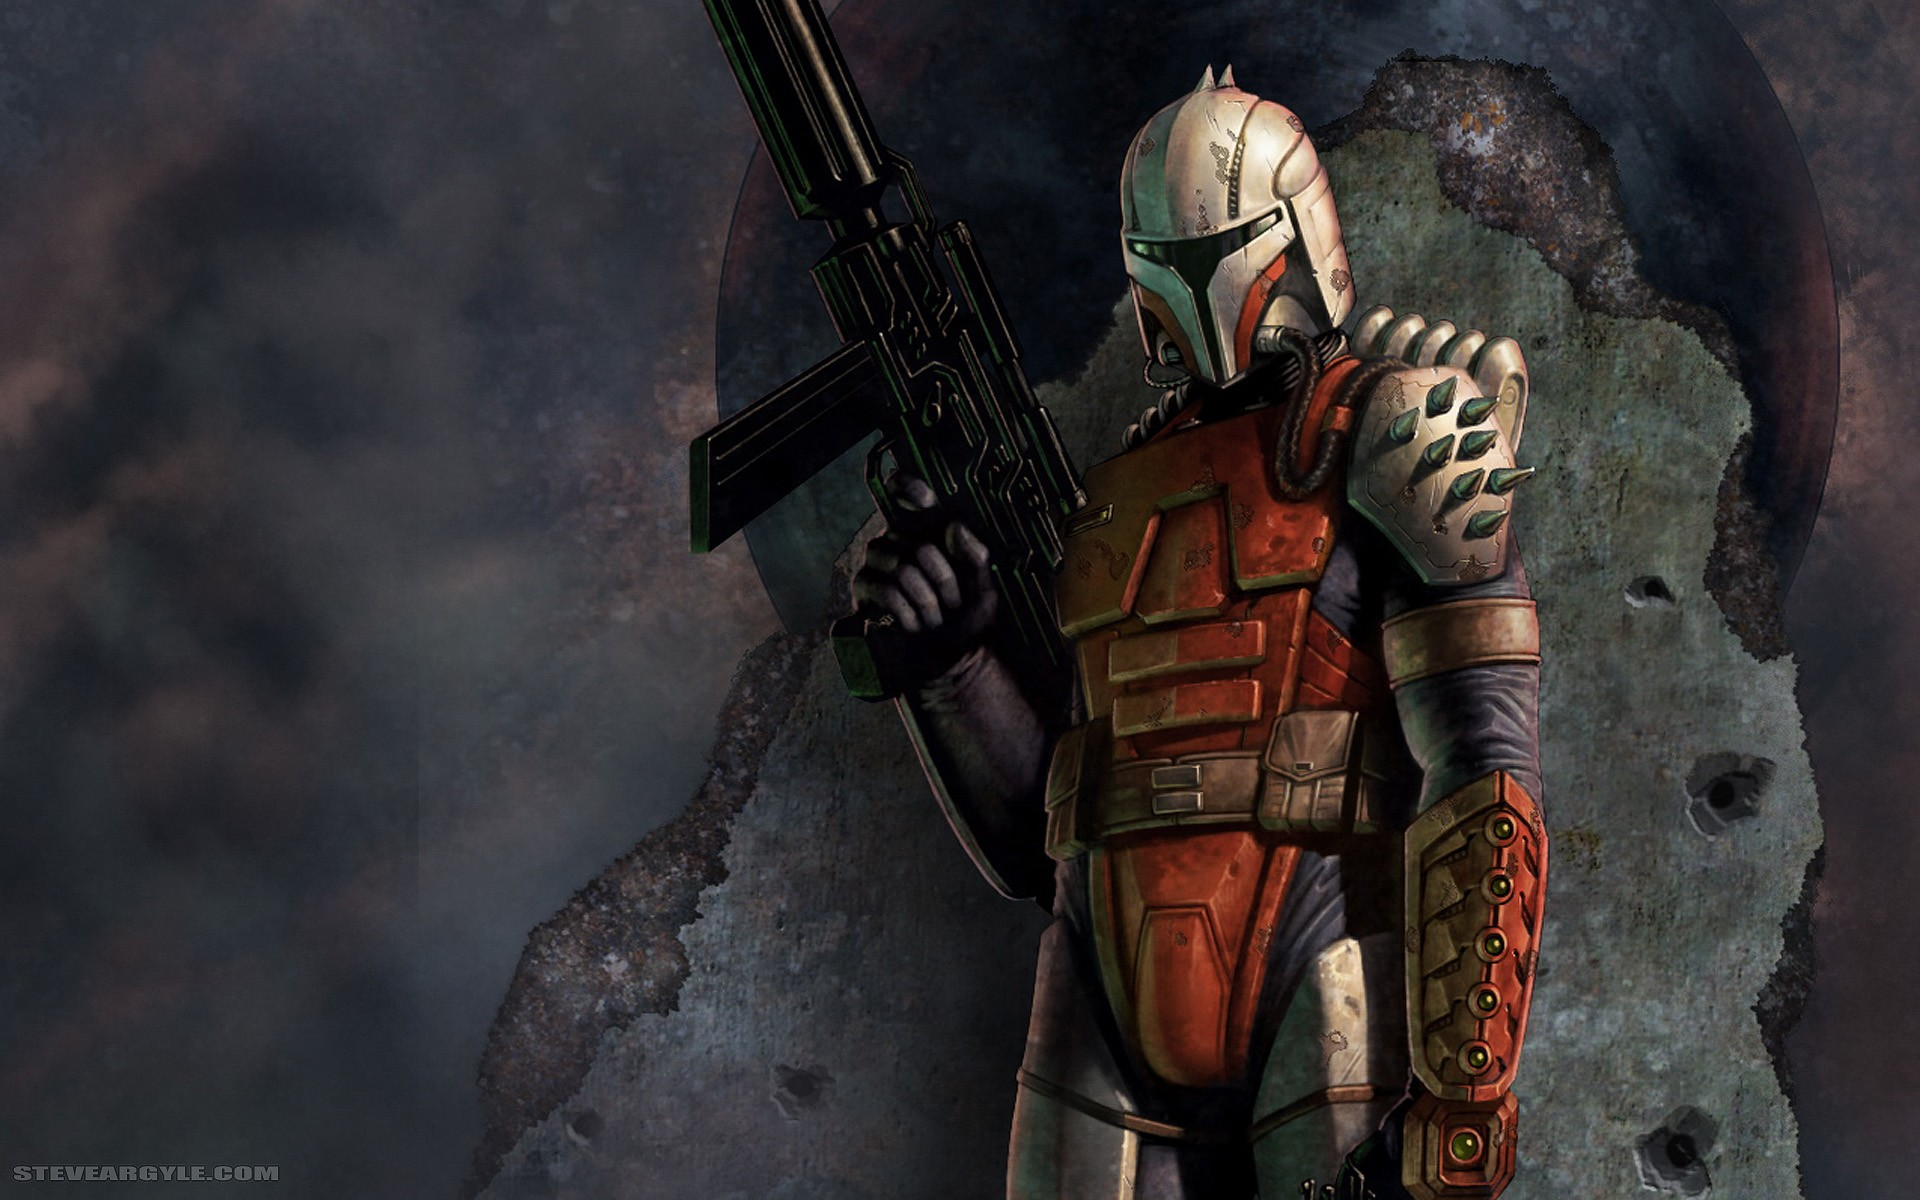 Mandalorian Wallpaper 1 Download Free Beautiful Full HD Wallpapers